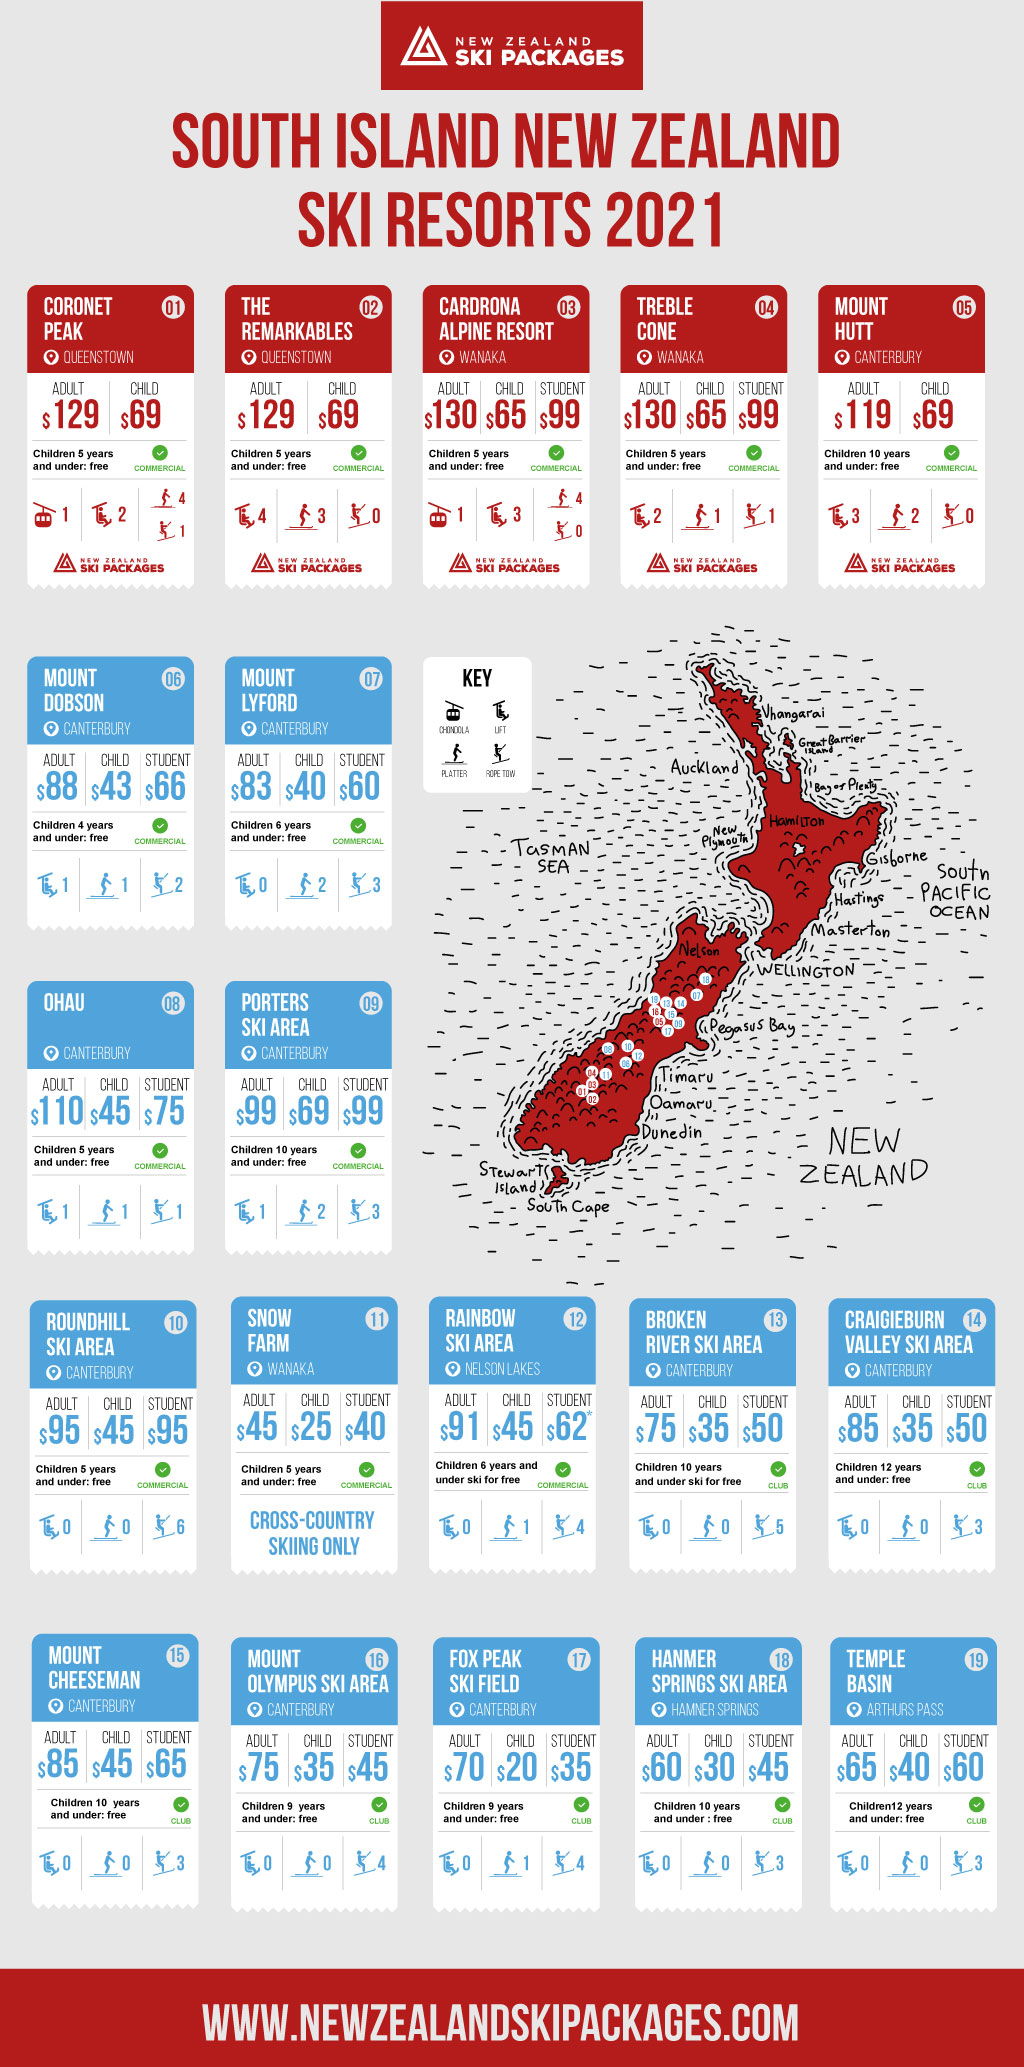 New Zealand Lift Ticket Prices 2021 | New Zealand Ski Packages